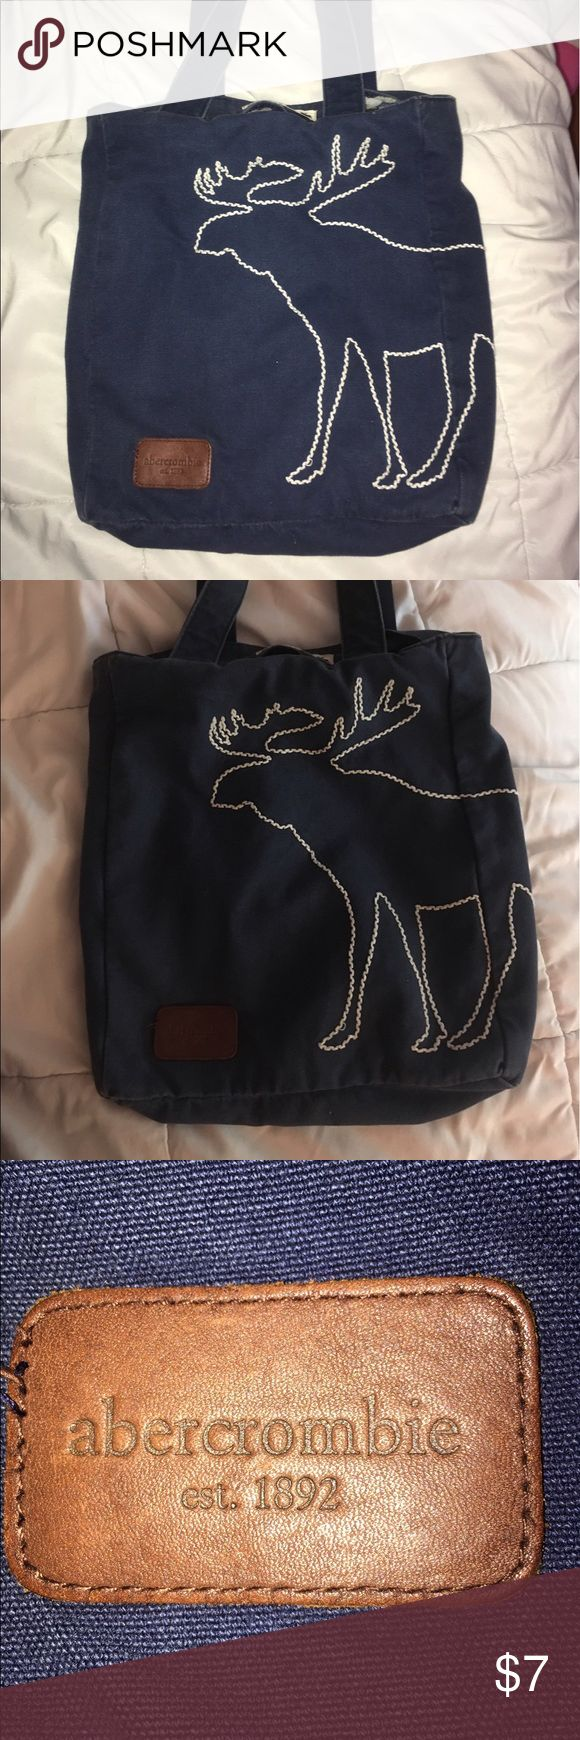 Abercrombie moose tote bag Color is a lil faded but it doesn't look bad. Gives it a vintage look. Cute bag, good for school or the beach. The inside seam flips open and exposes loose threads. But it is not noticeable unless you open the seam (pic 4). Abercrombie & Fitch Bags Totes